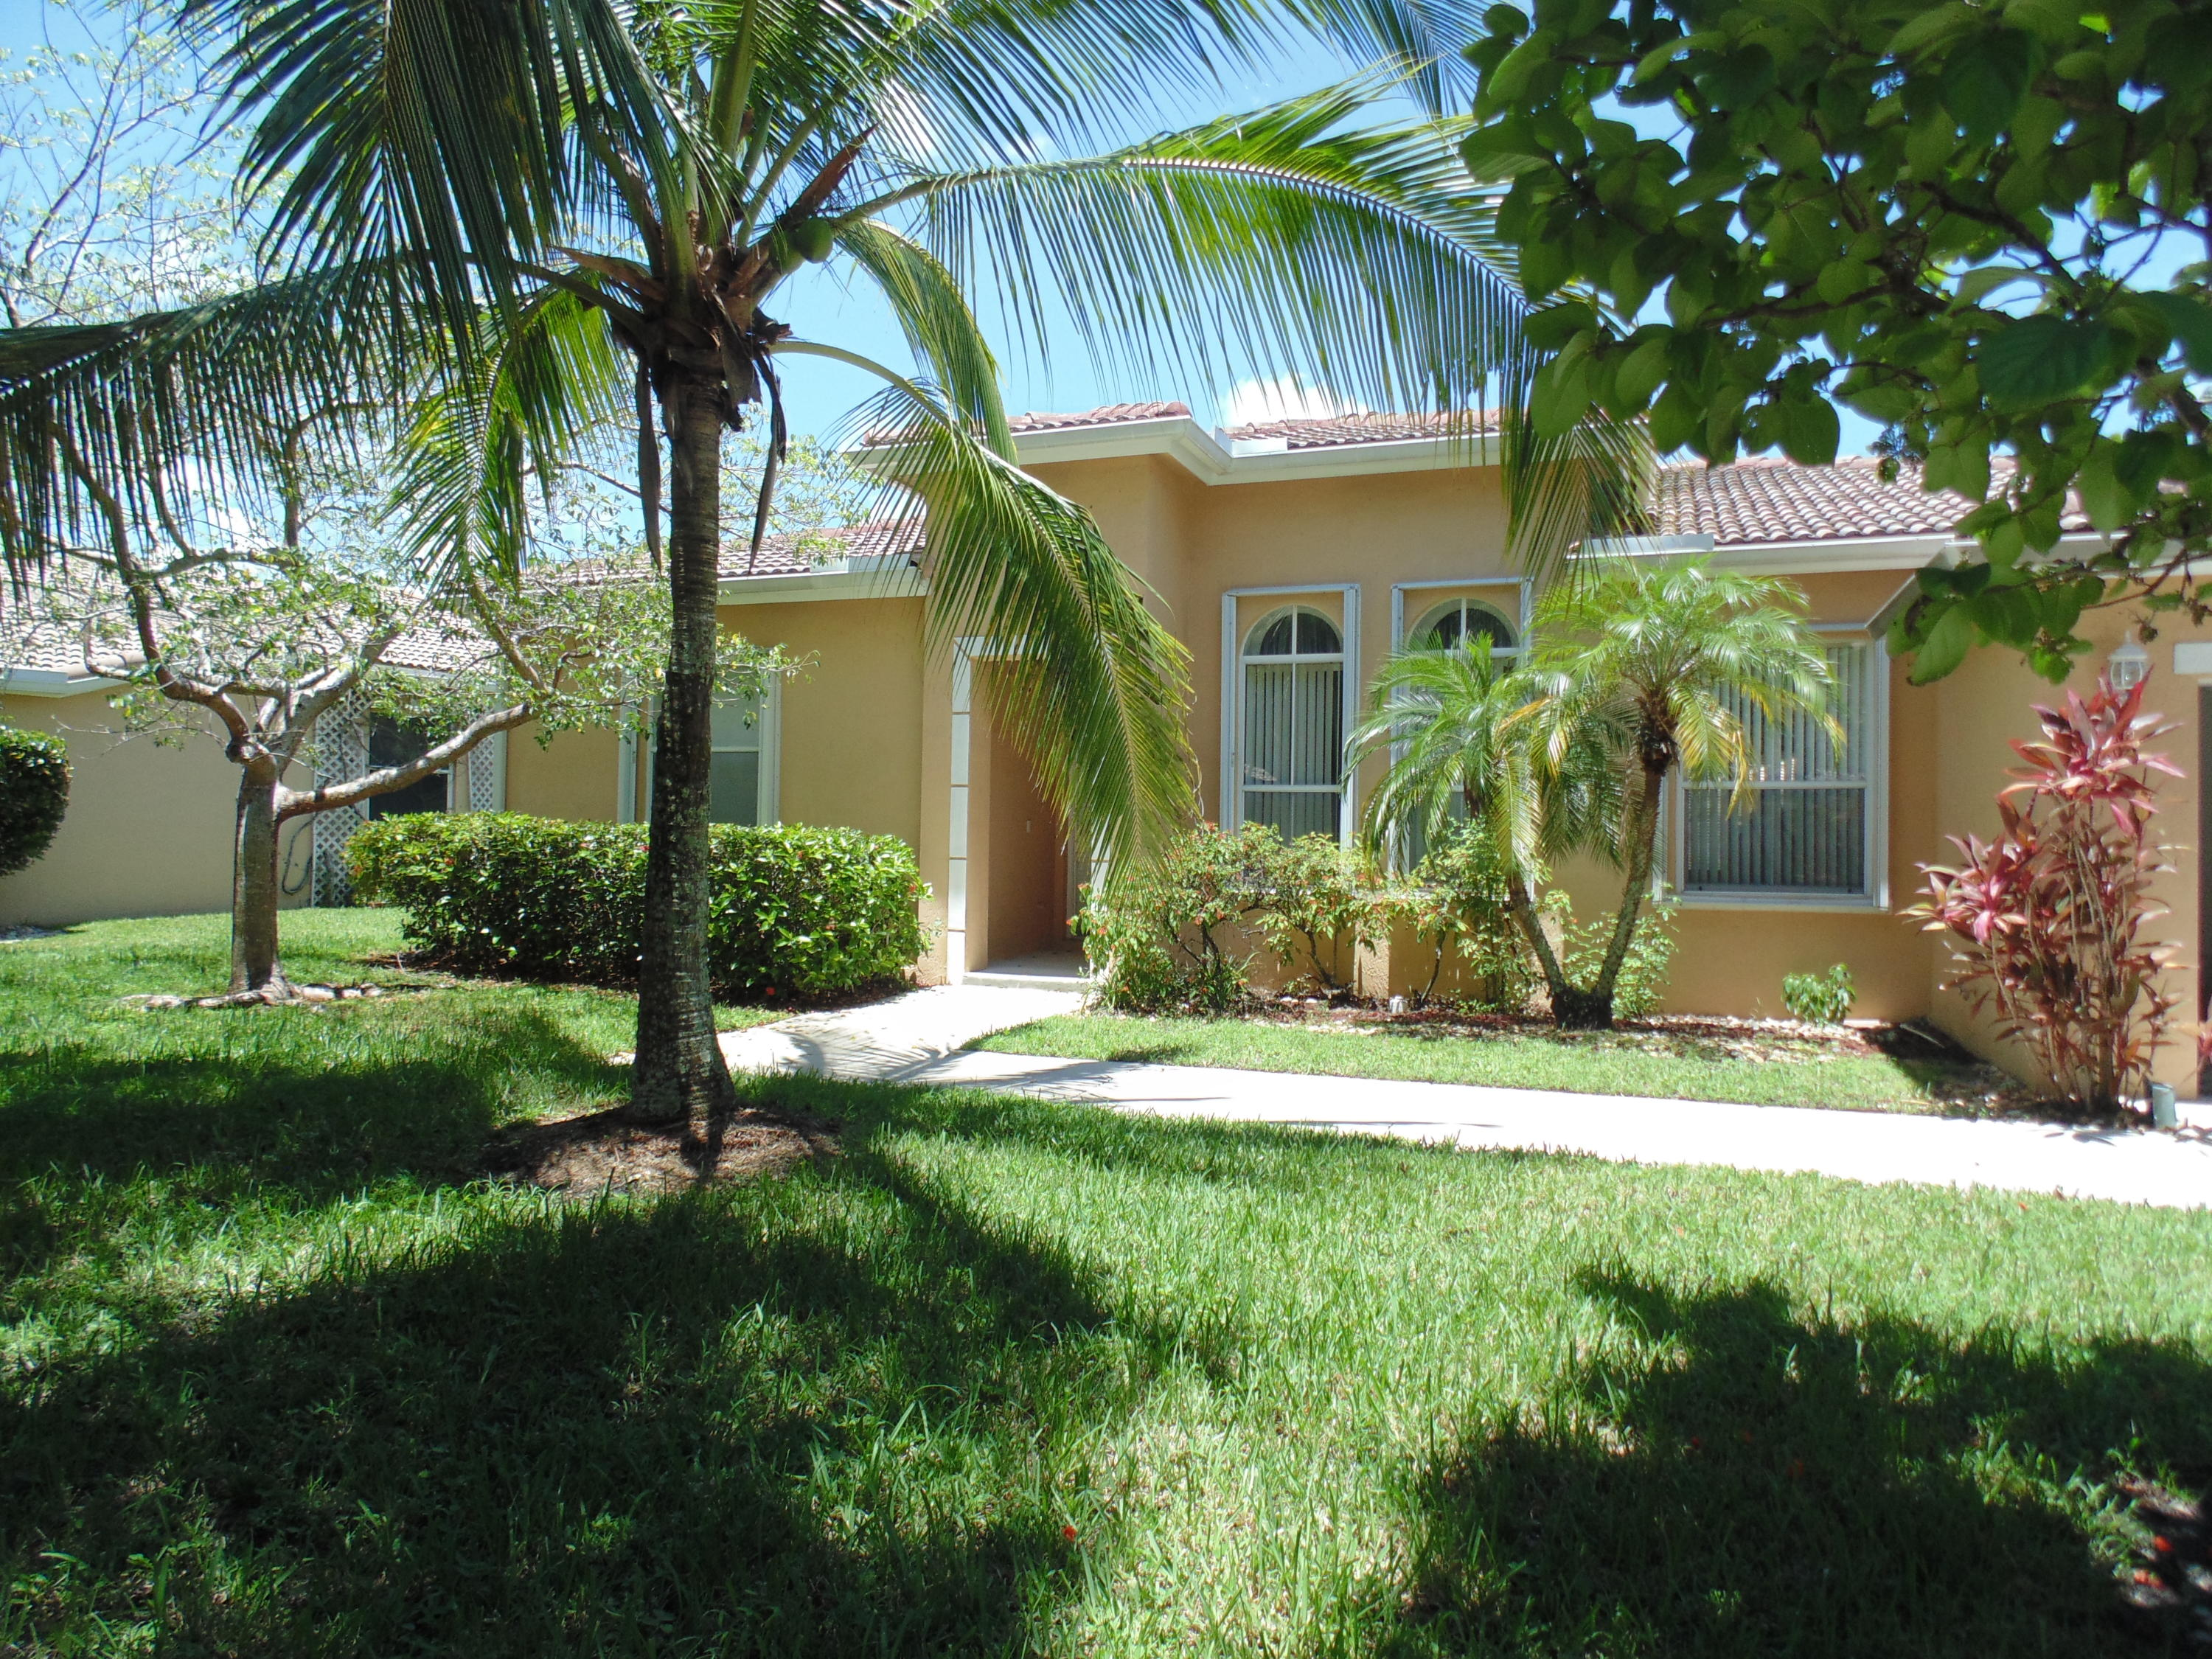 4121 41st Drive, Coconut Creek, Florida 33073, 3 Bedrooms Bedrooms, ,2 BathroomsBathrooms,A,Single family,41st,RX-10516369